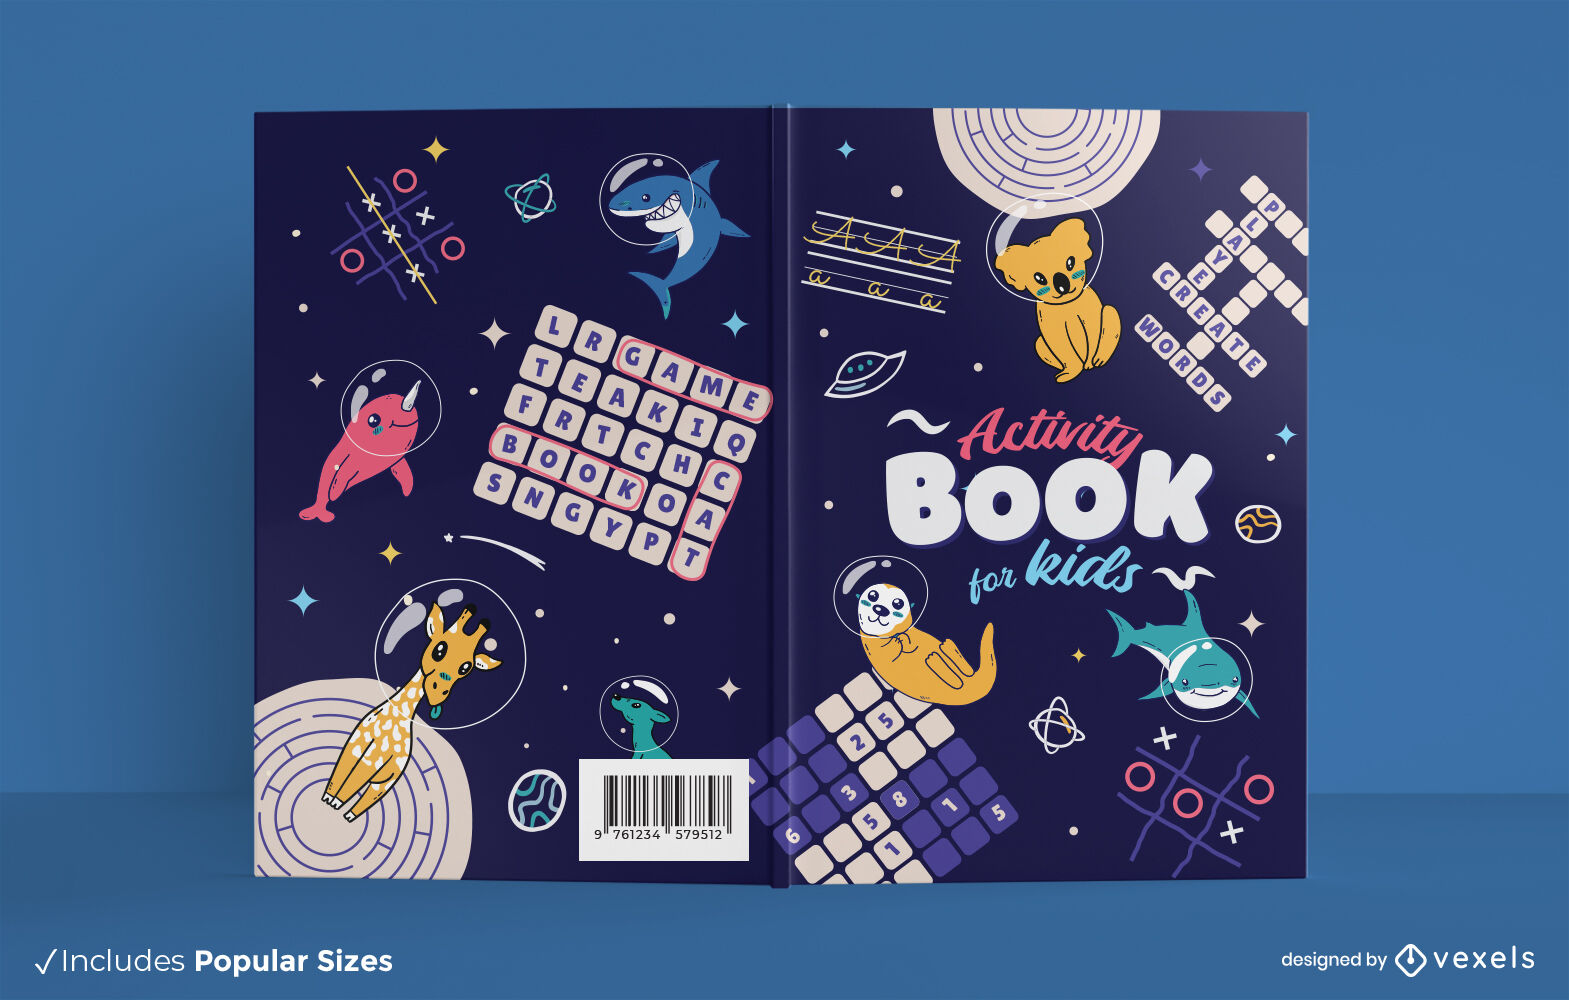 Childrens activity book space cover design